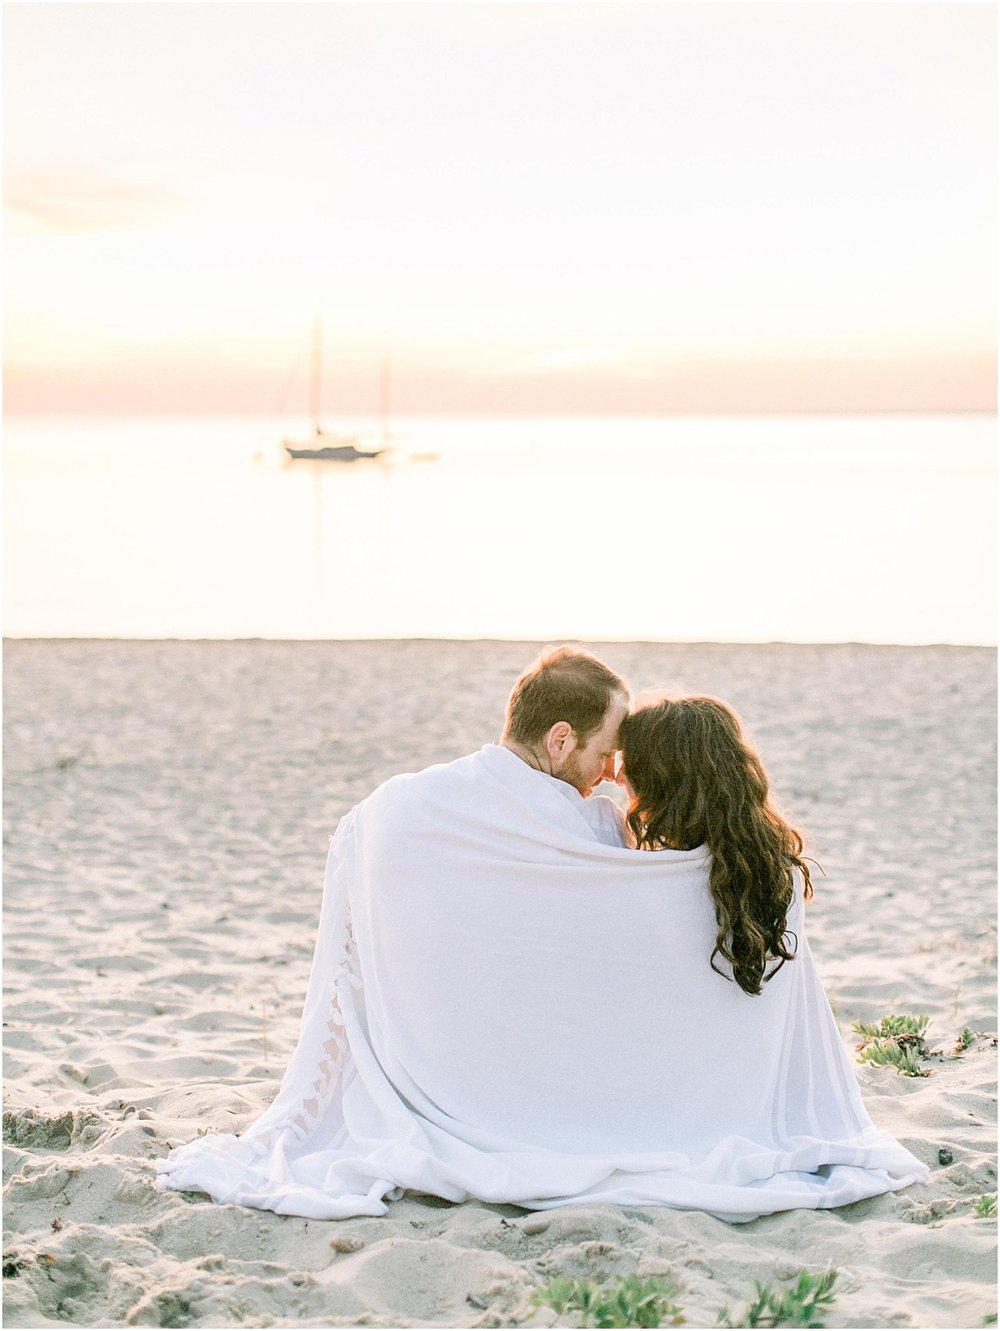 love_and_light_photographs_meredith_chris_engagement_martha_vineyard_marthas_nancys_cape_cod_boston_wedding_photographer_meredith_jane_photography_photo_0466.jpg